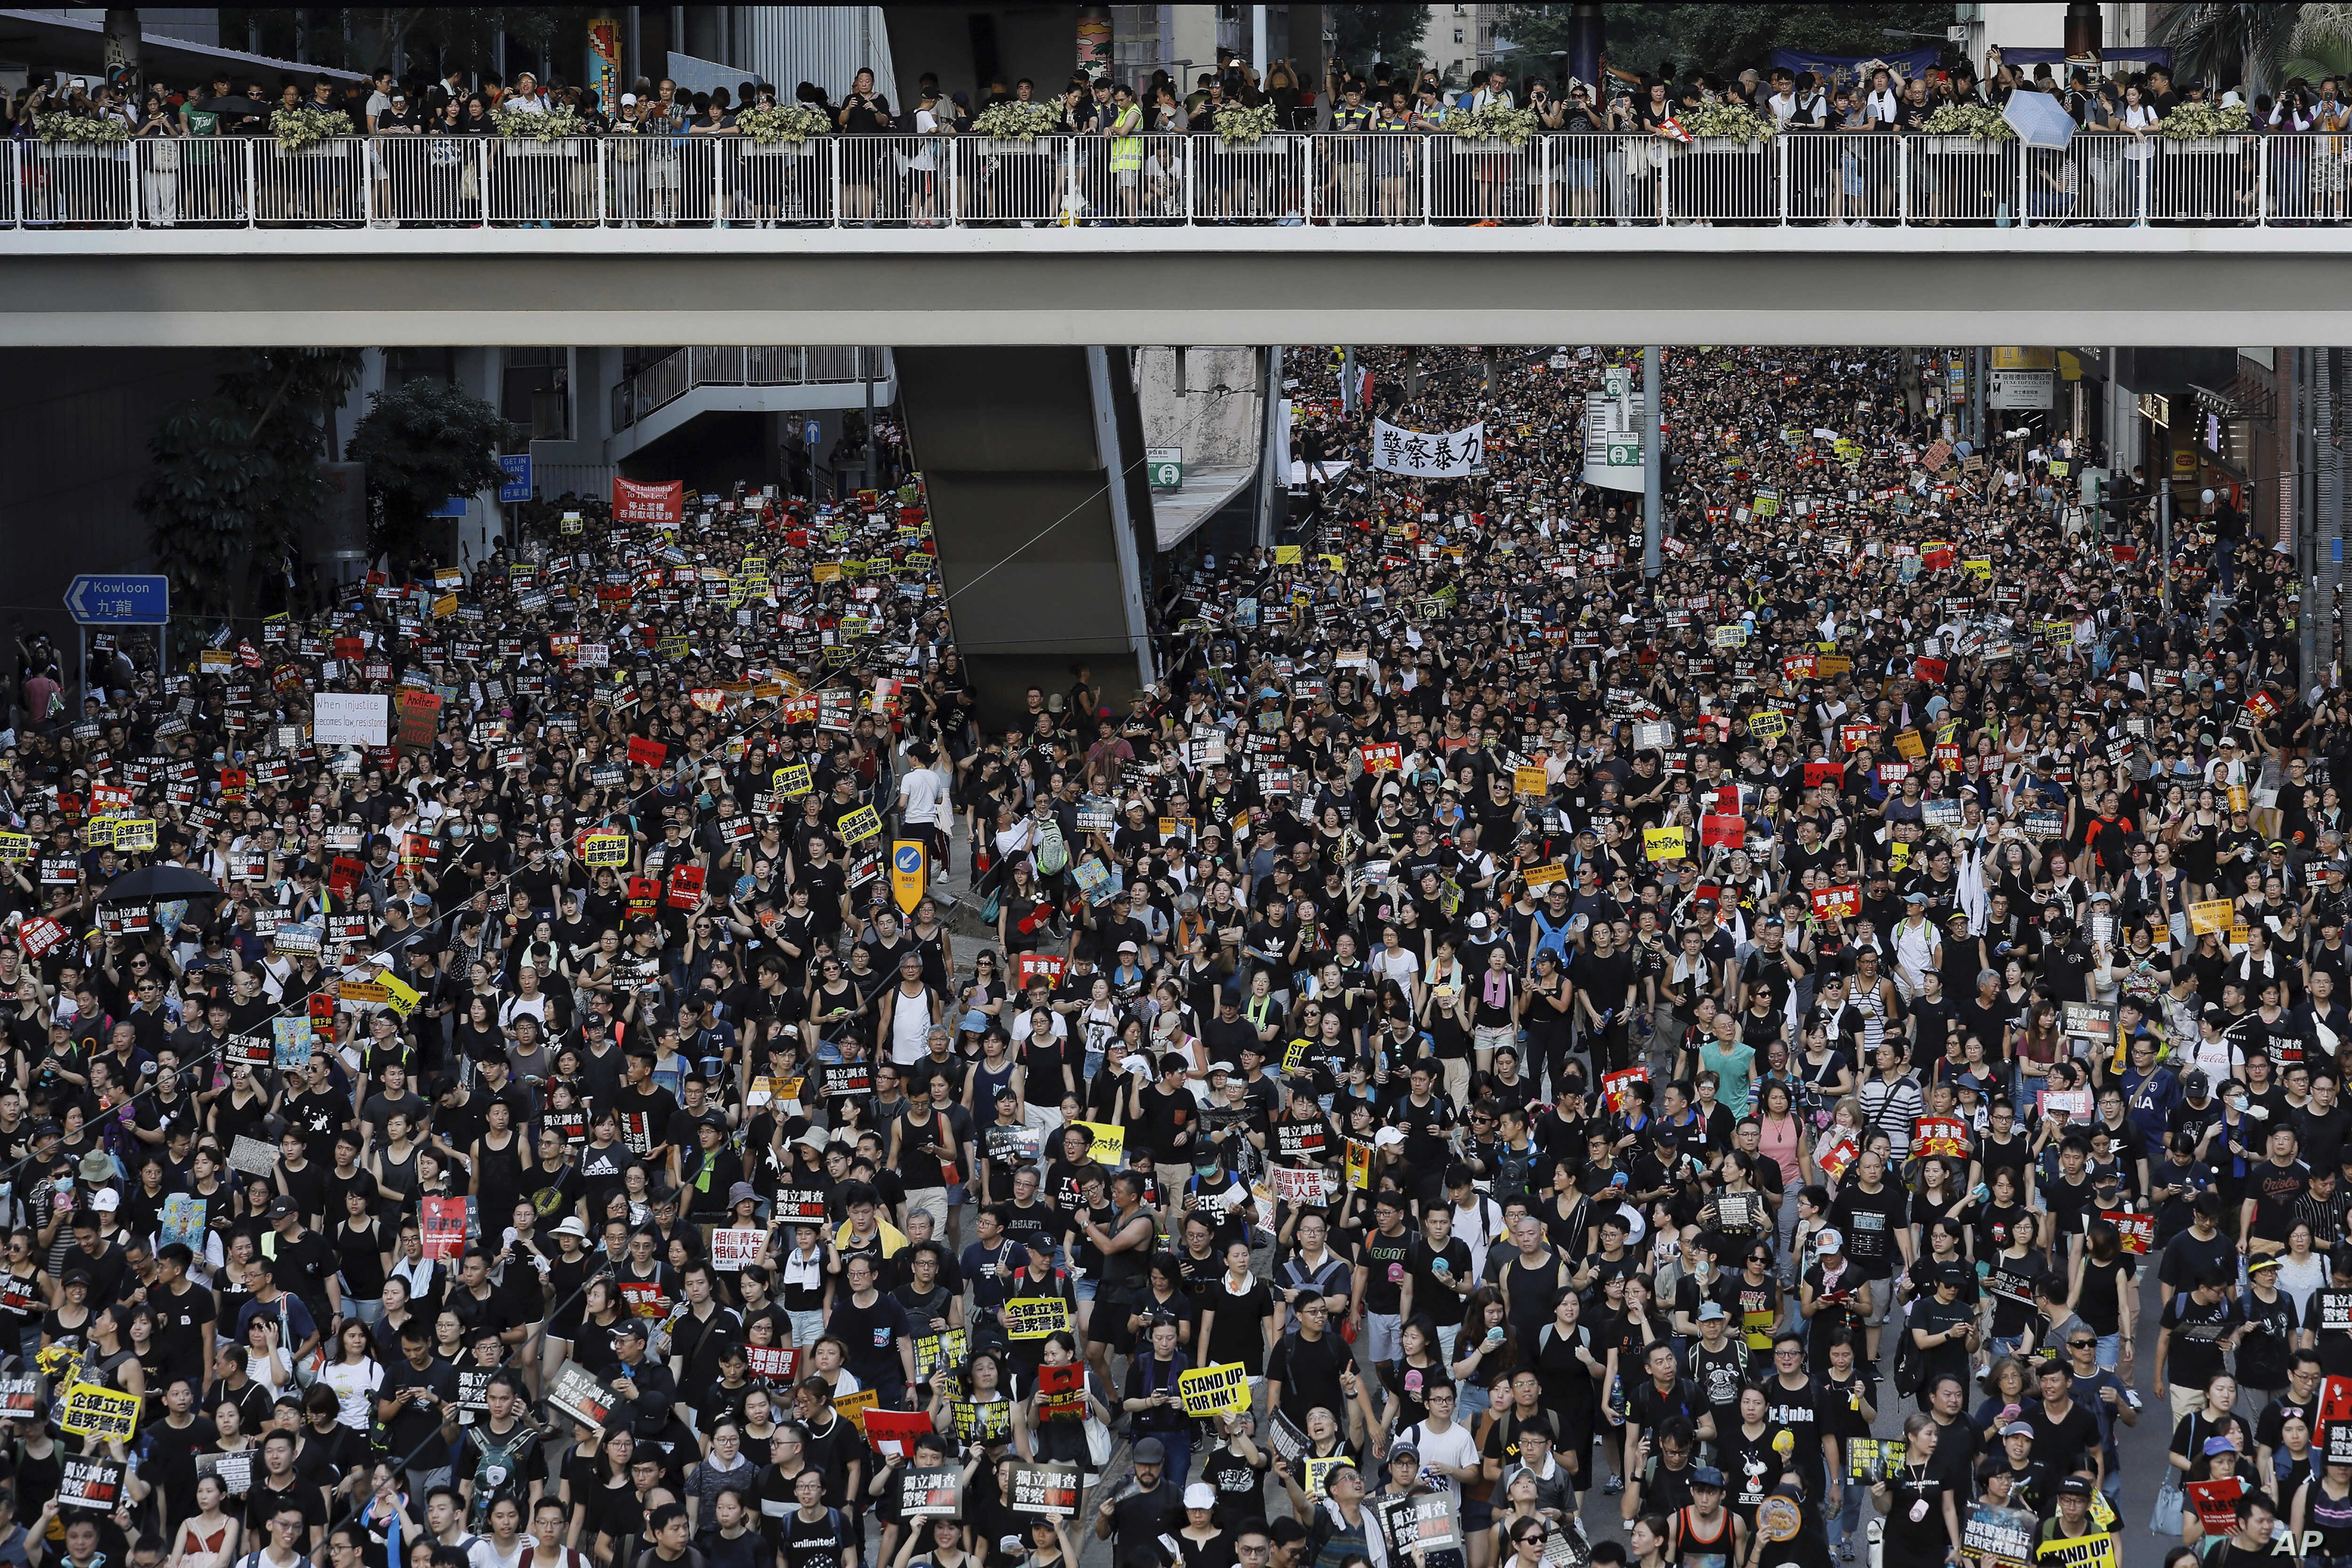 Protesters take part in a rally on Monday, July 1, 2019, in Hong Kong. Combative protesters tried to break into the Hong Kong legislature Monday as a crowd of thousands prepared to start a march in that direction on the 22nd anniversary of the…